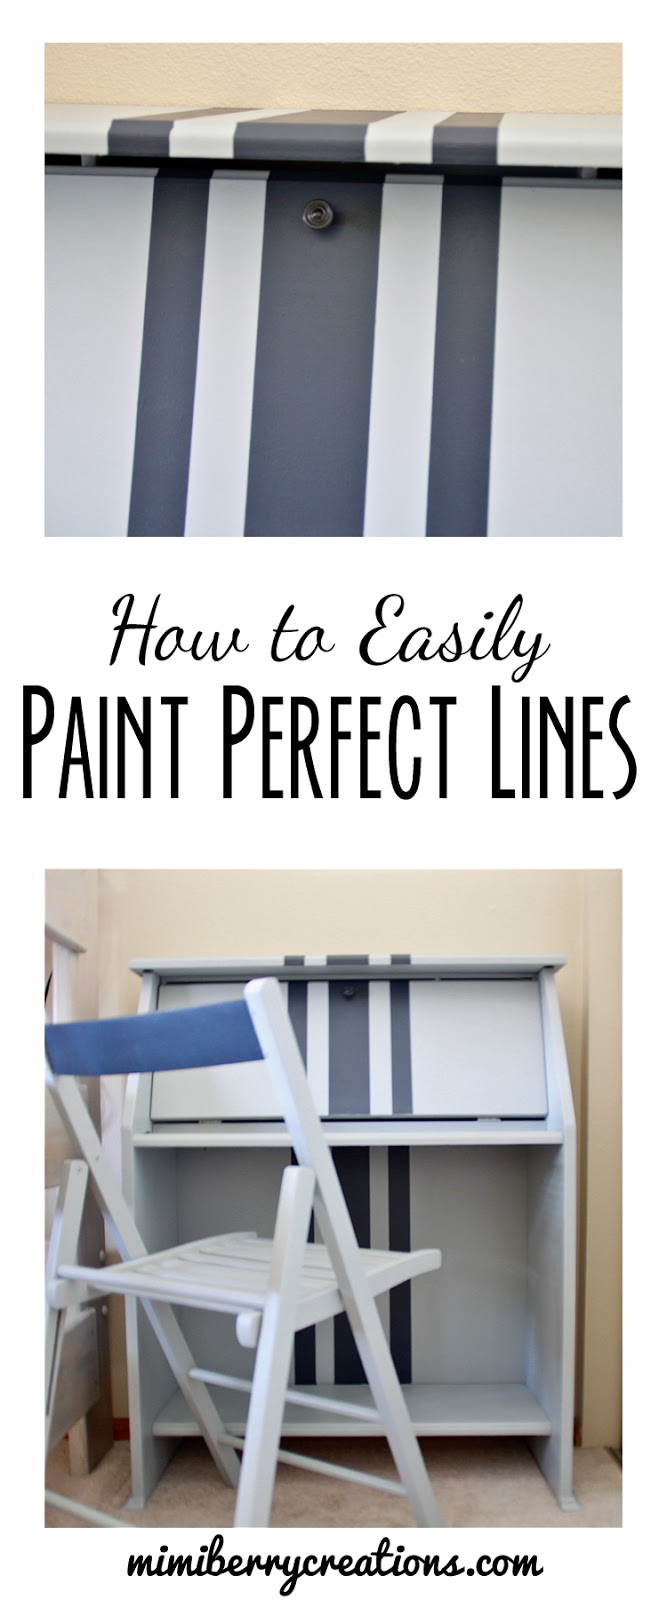 How To Paint Perfect Lines AND Fix Water Damaged Laminate Furniture